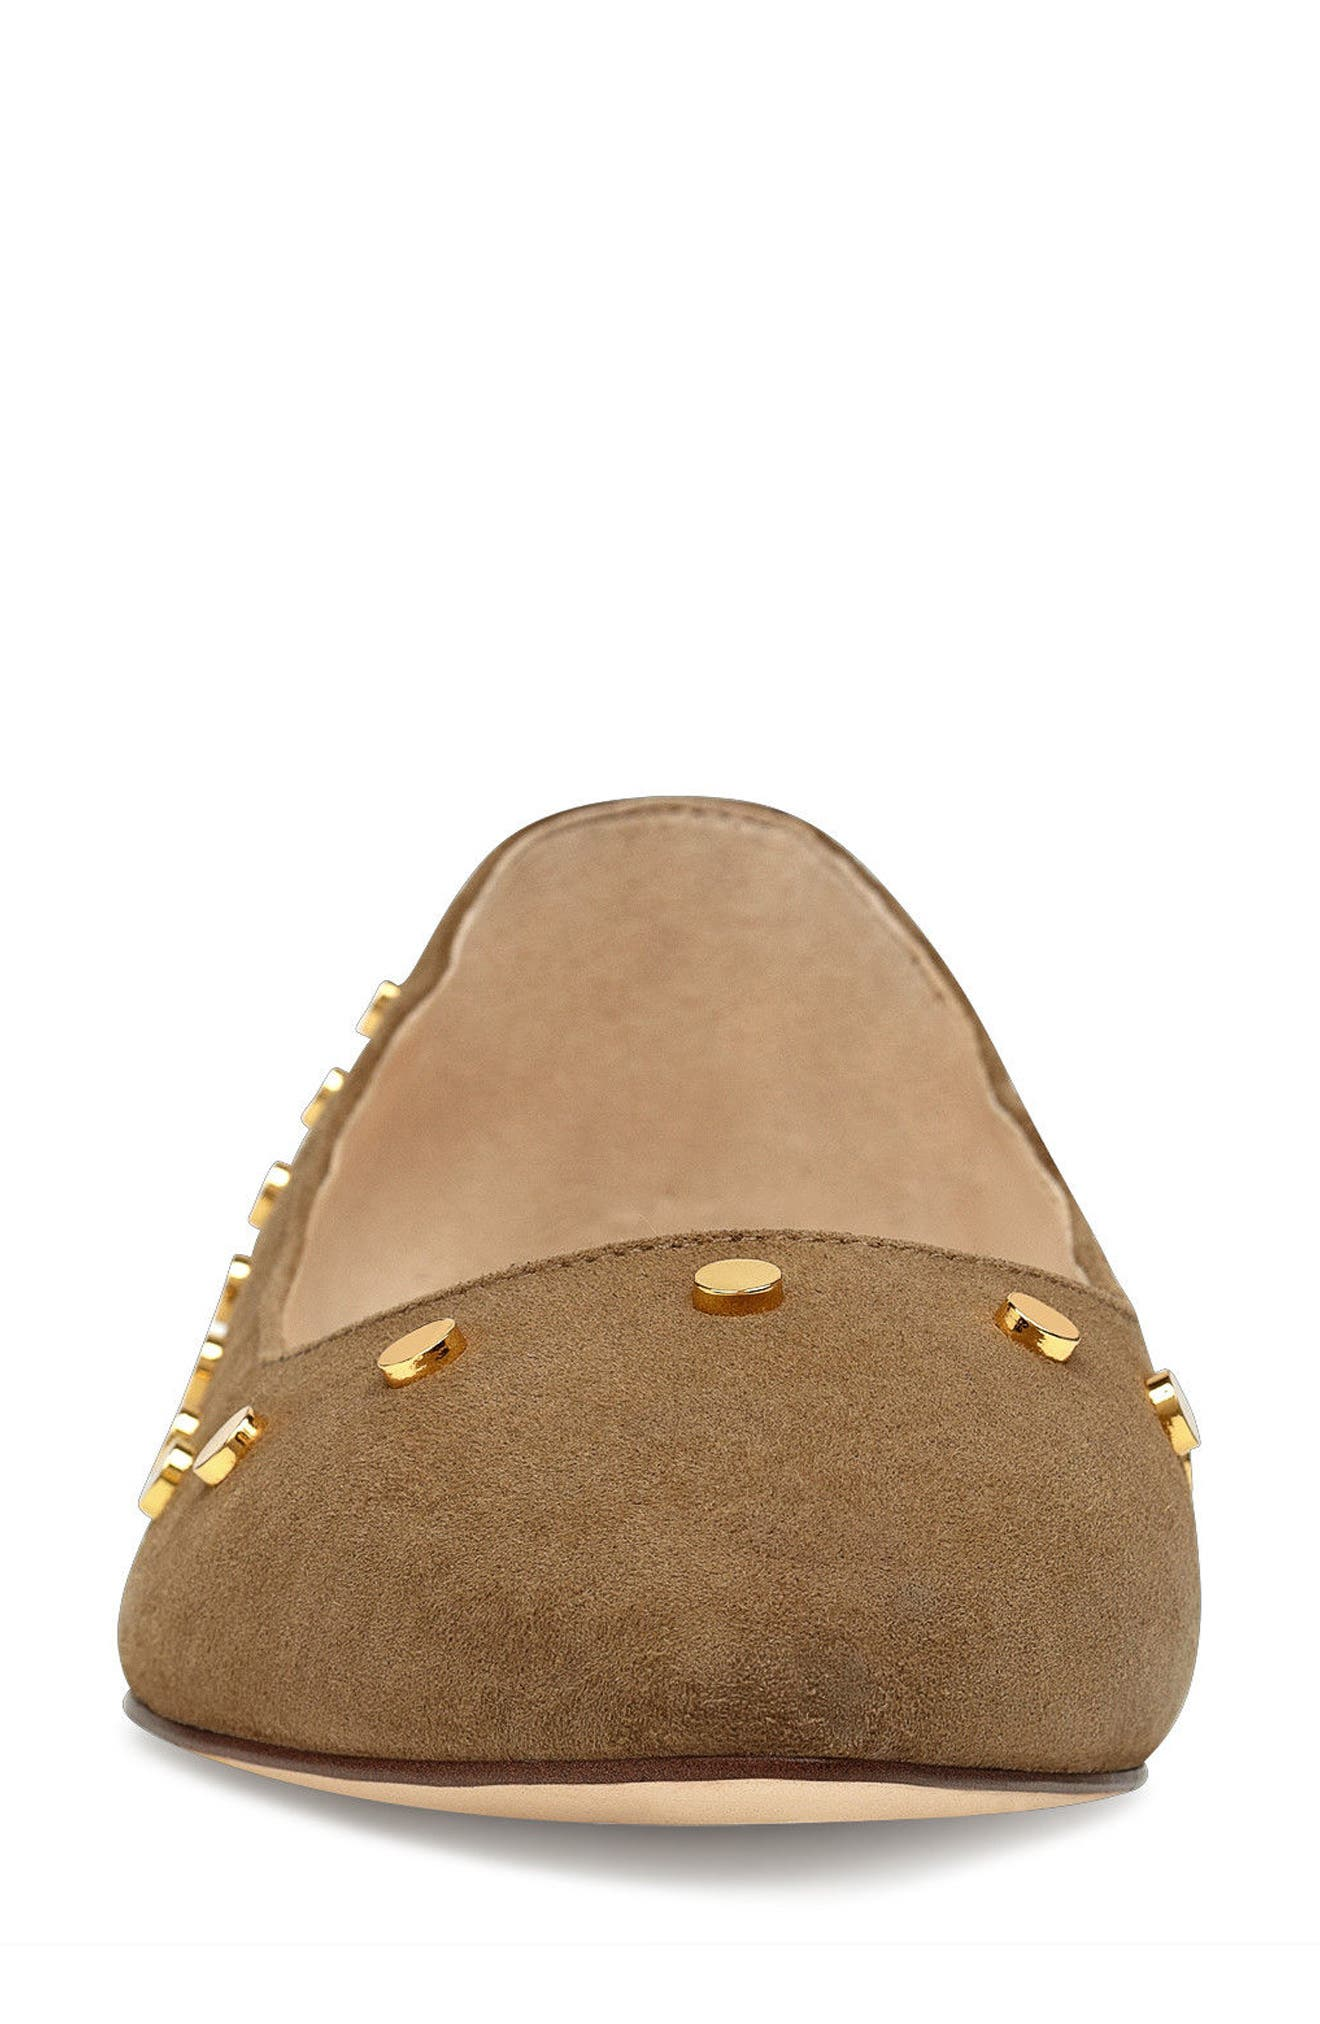 Sigismonda Studded Flat,                             Alternate thumbnail 4, color,                             Green Suede